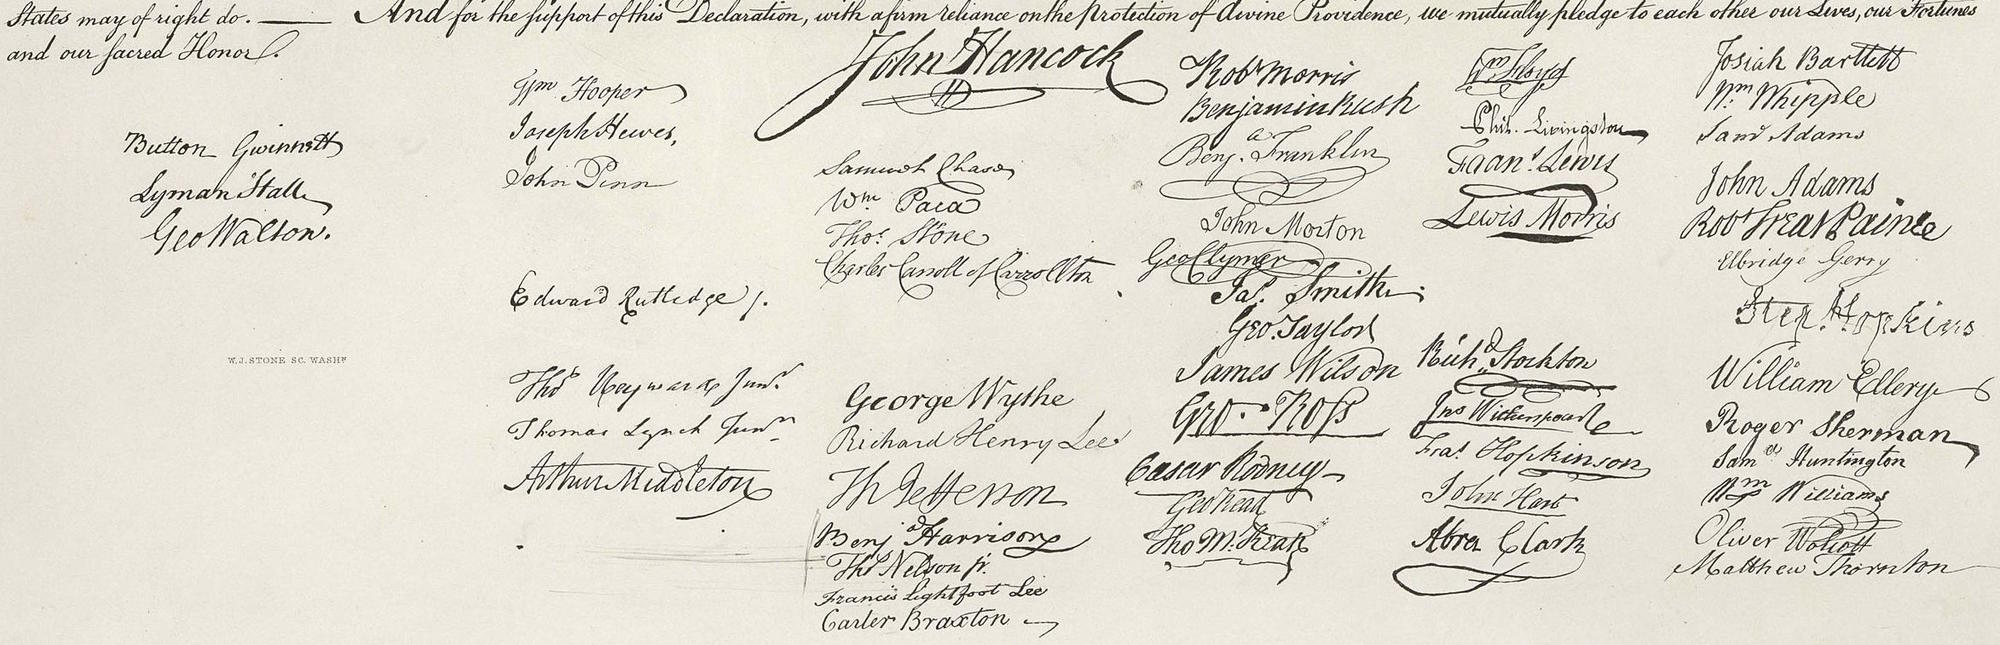 William J. Stone Facsimile of the Declaration of Independence, 1823 (Public Domain)